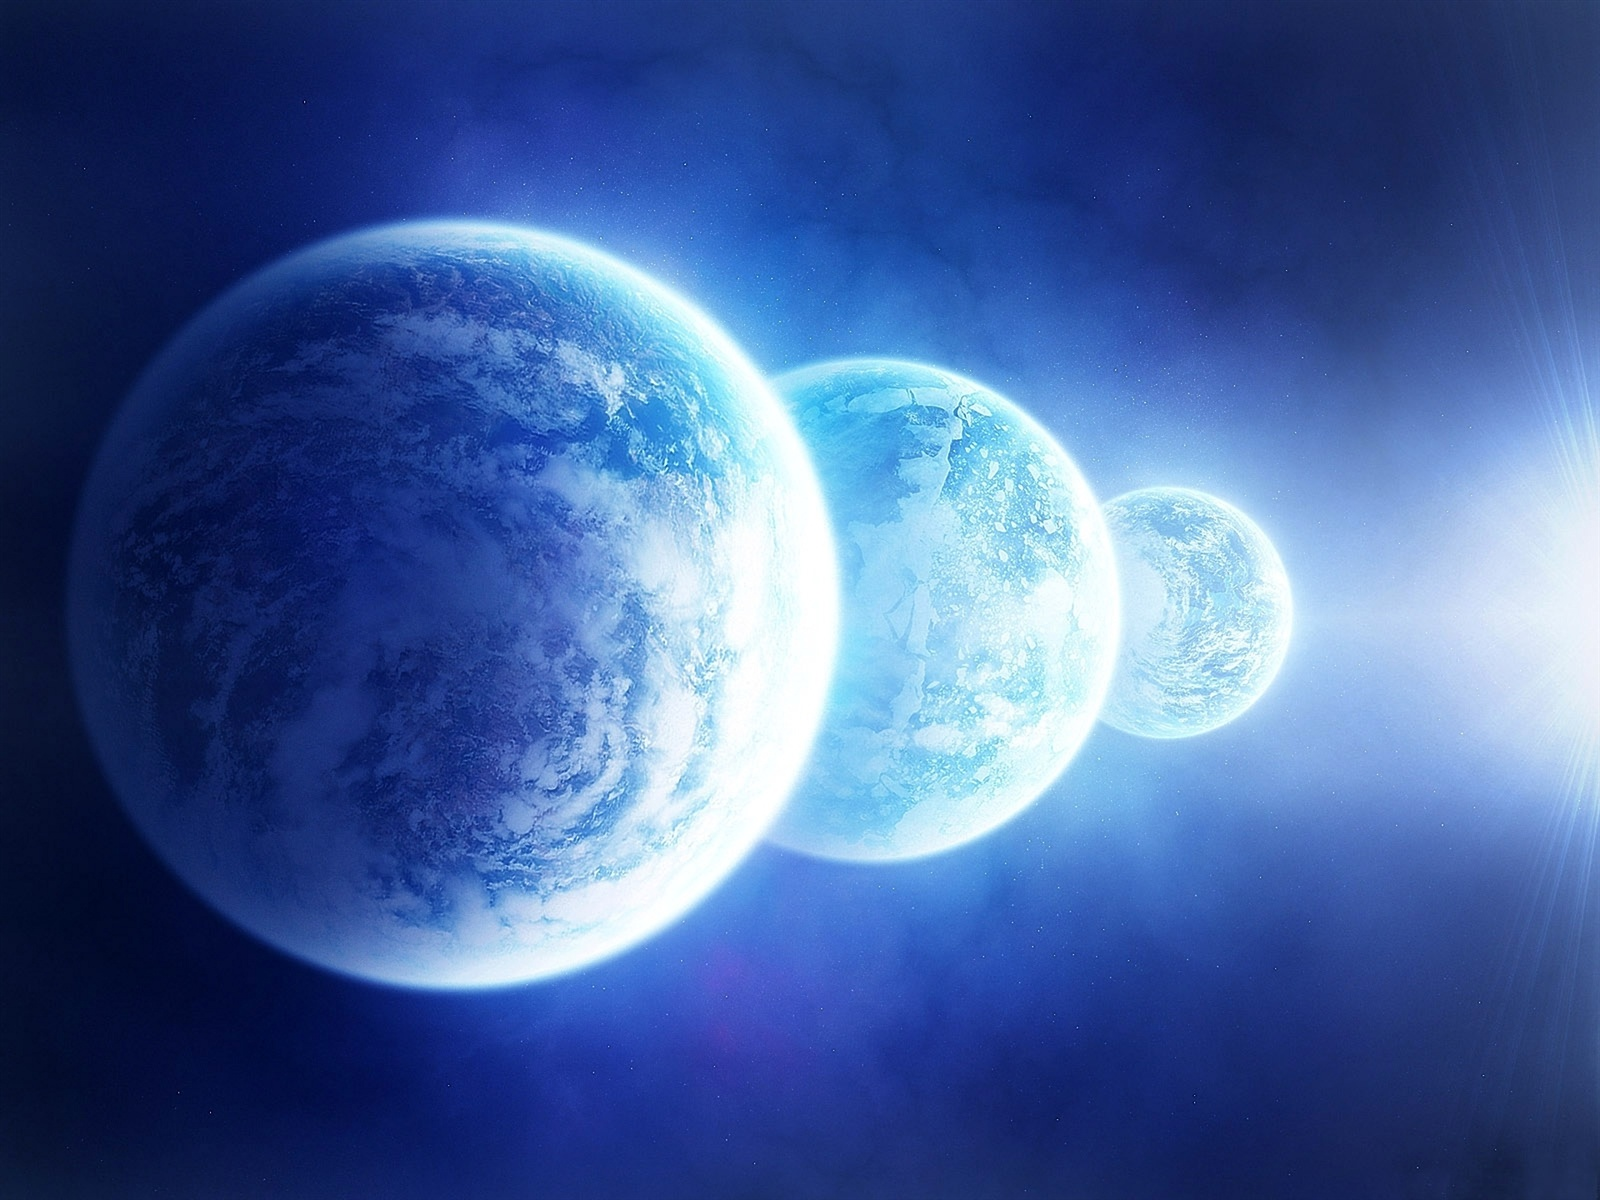 Three blue planet wallpaper - 1600x1200